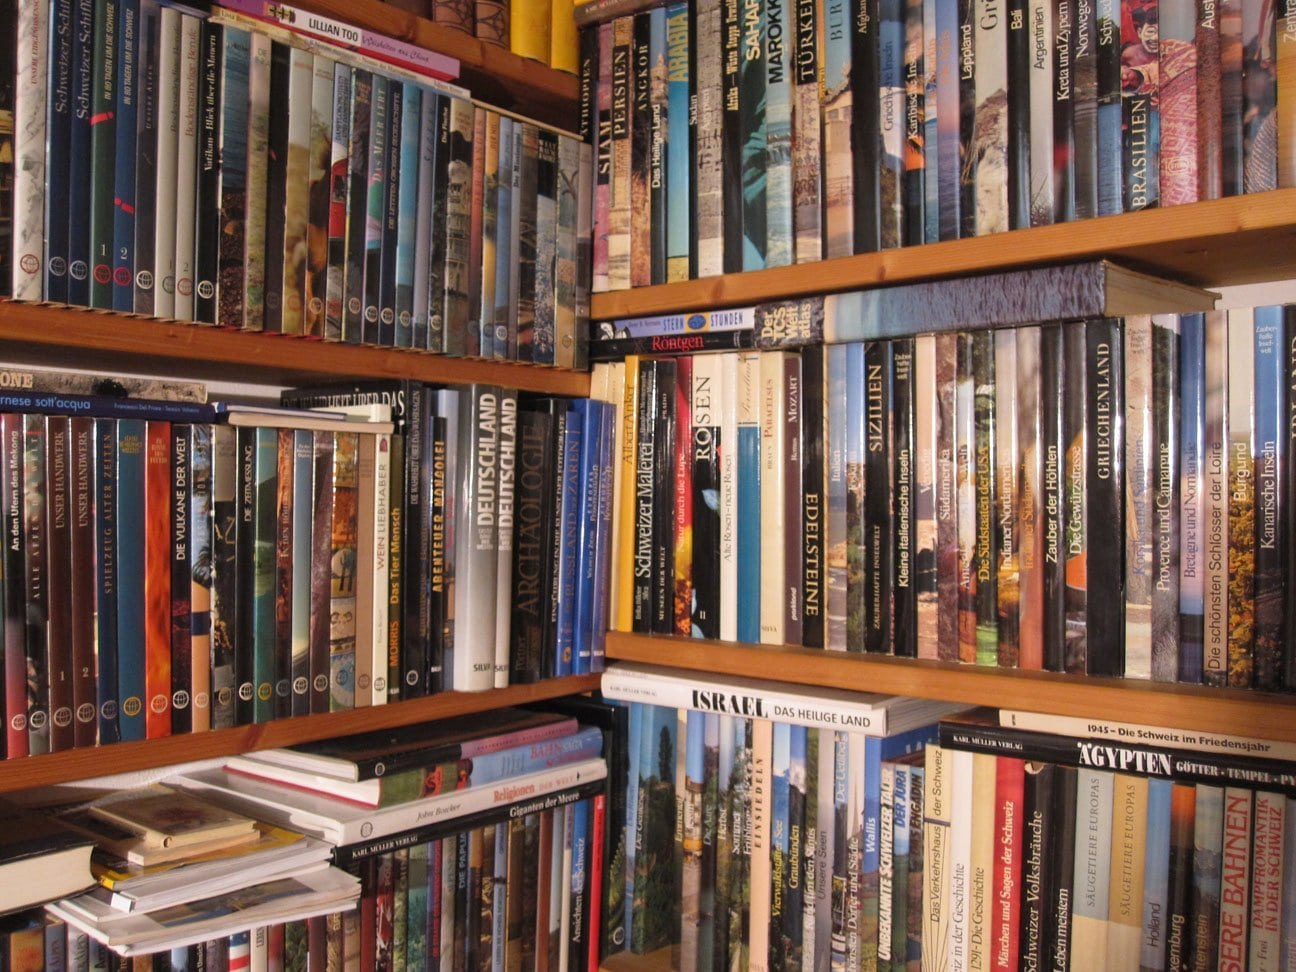 Bookshelves with books of the world